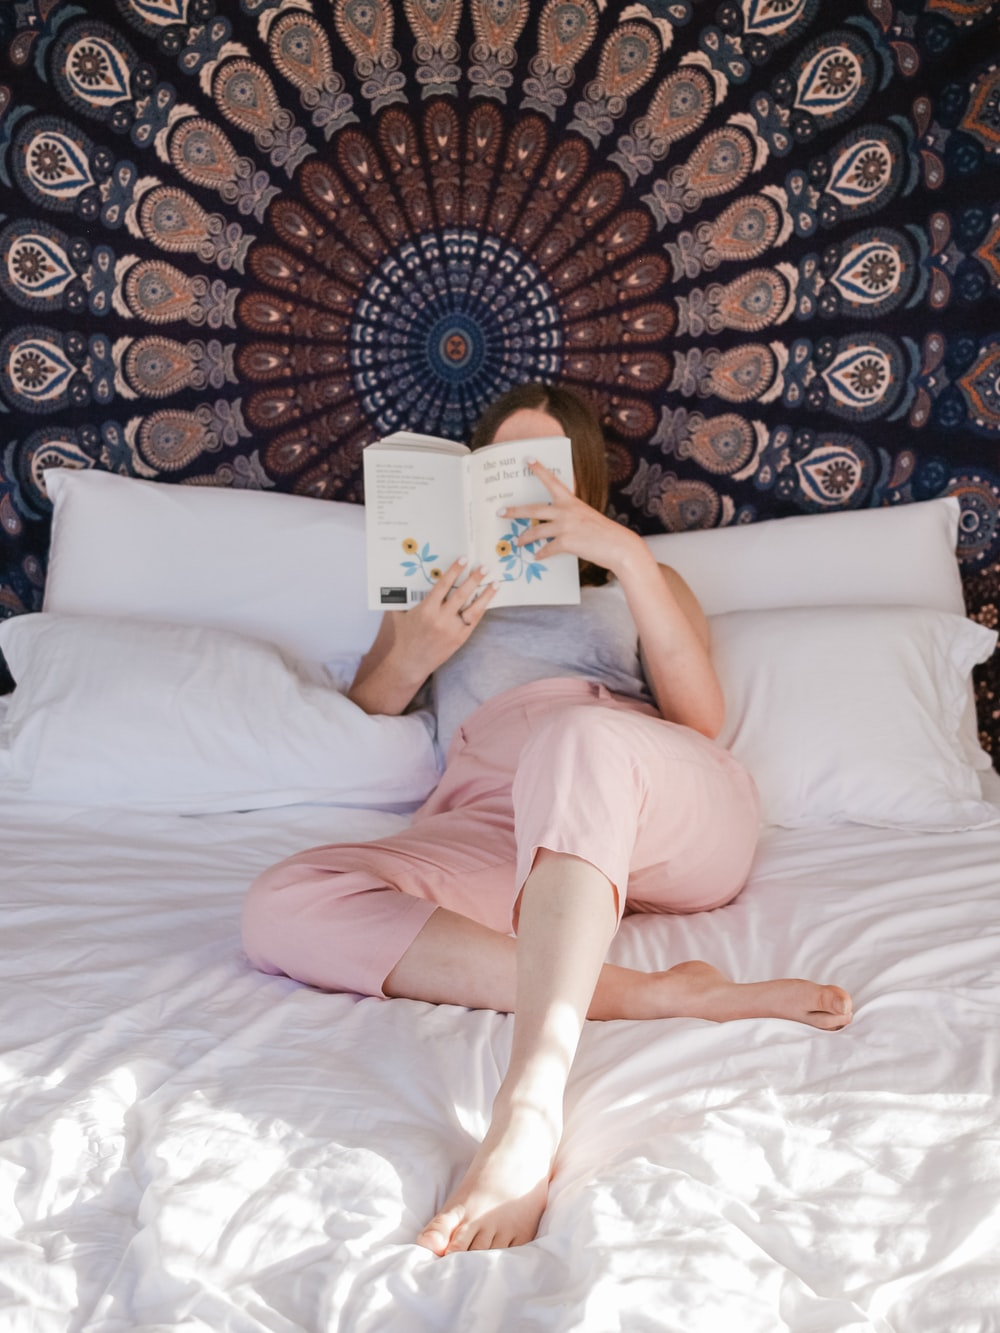 woman lying on bed while reading a book